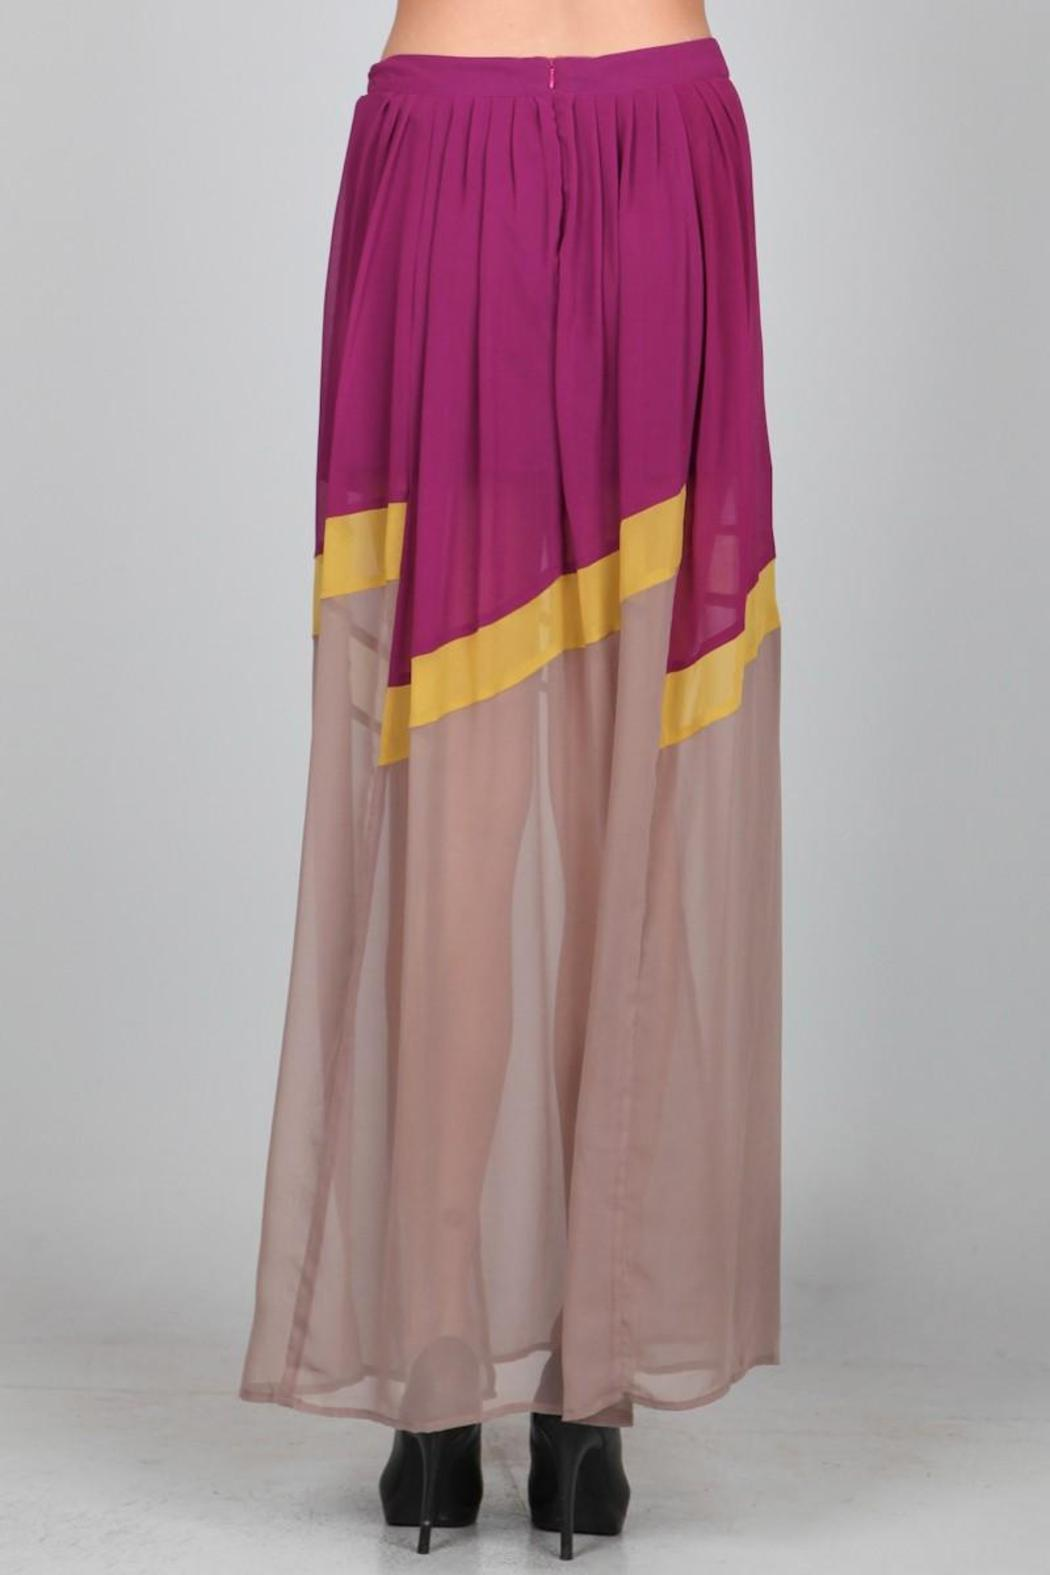 ark co color block maxi skirt from cleveland by april